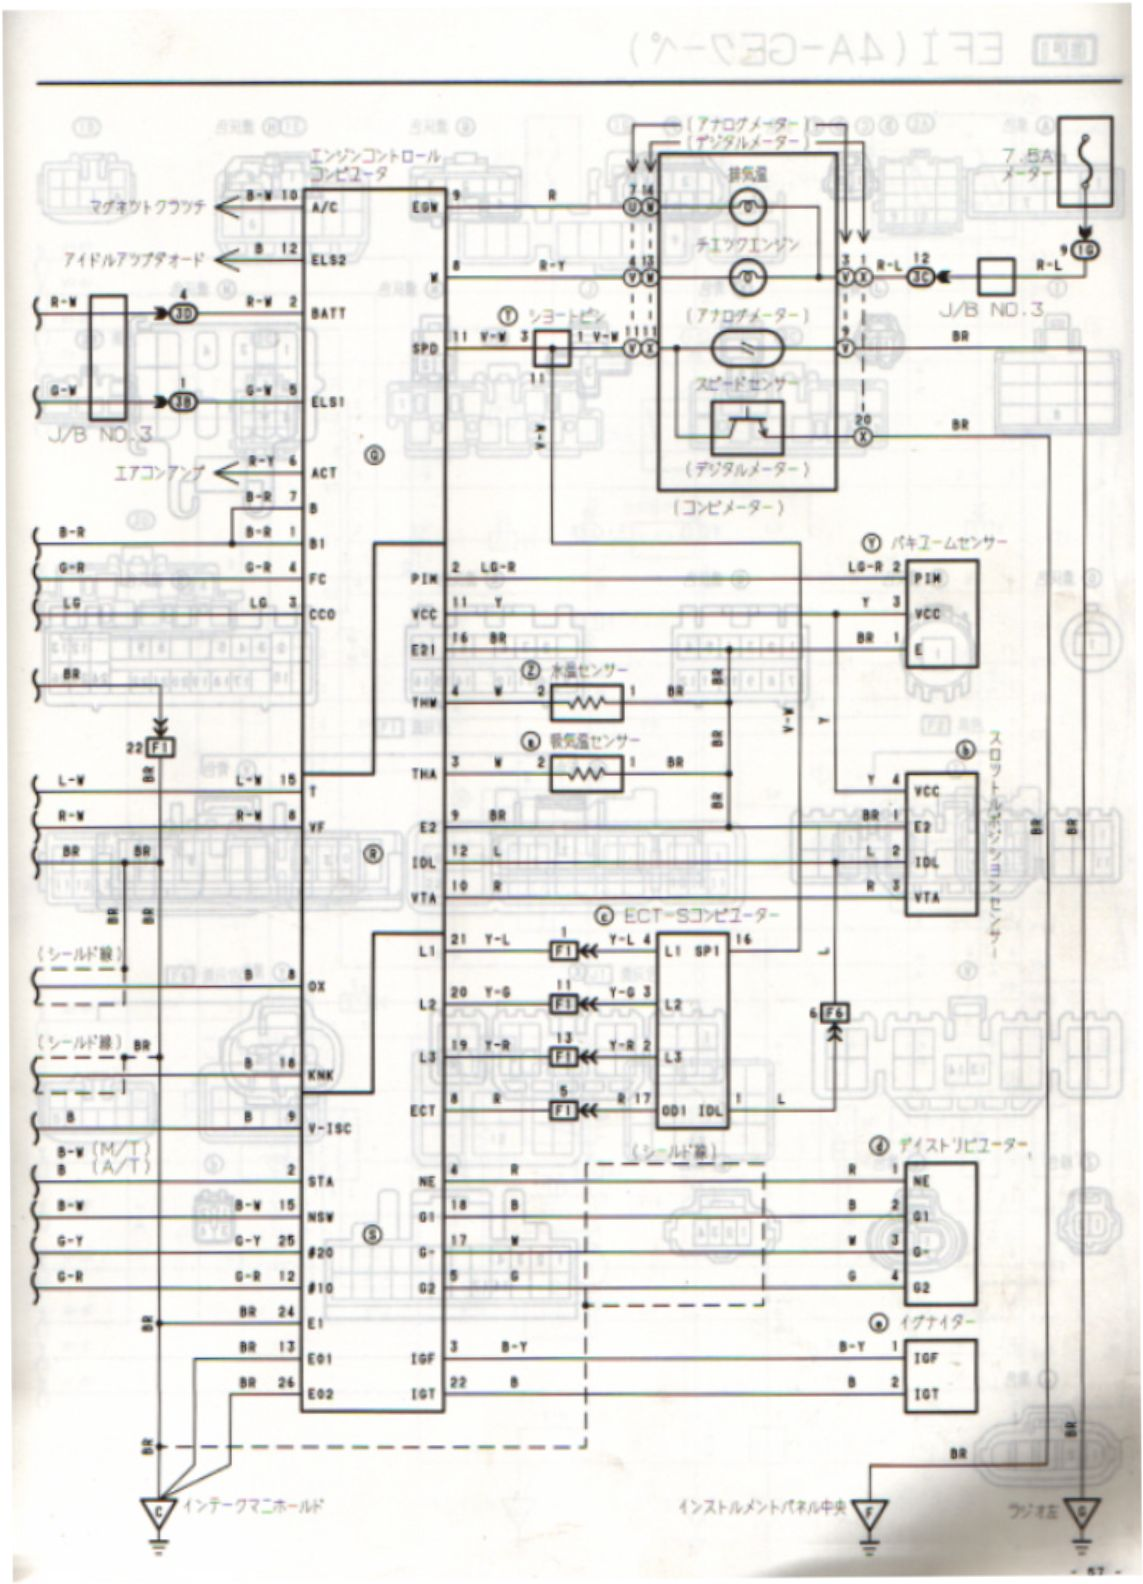 ae86 electrical problem driftworks forum ae86 ignition wiring diagram at bayanpartner.co